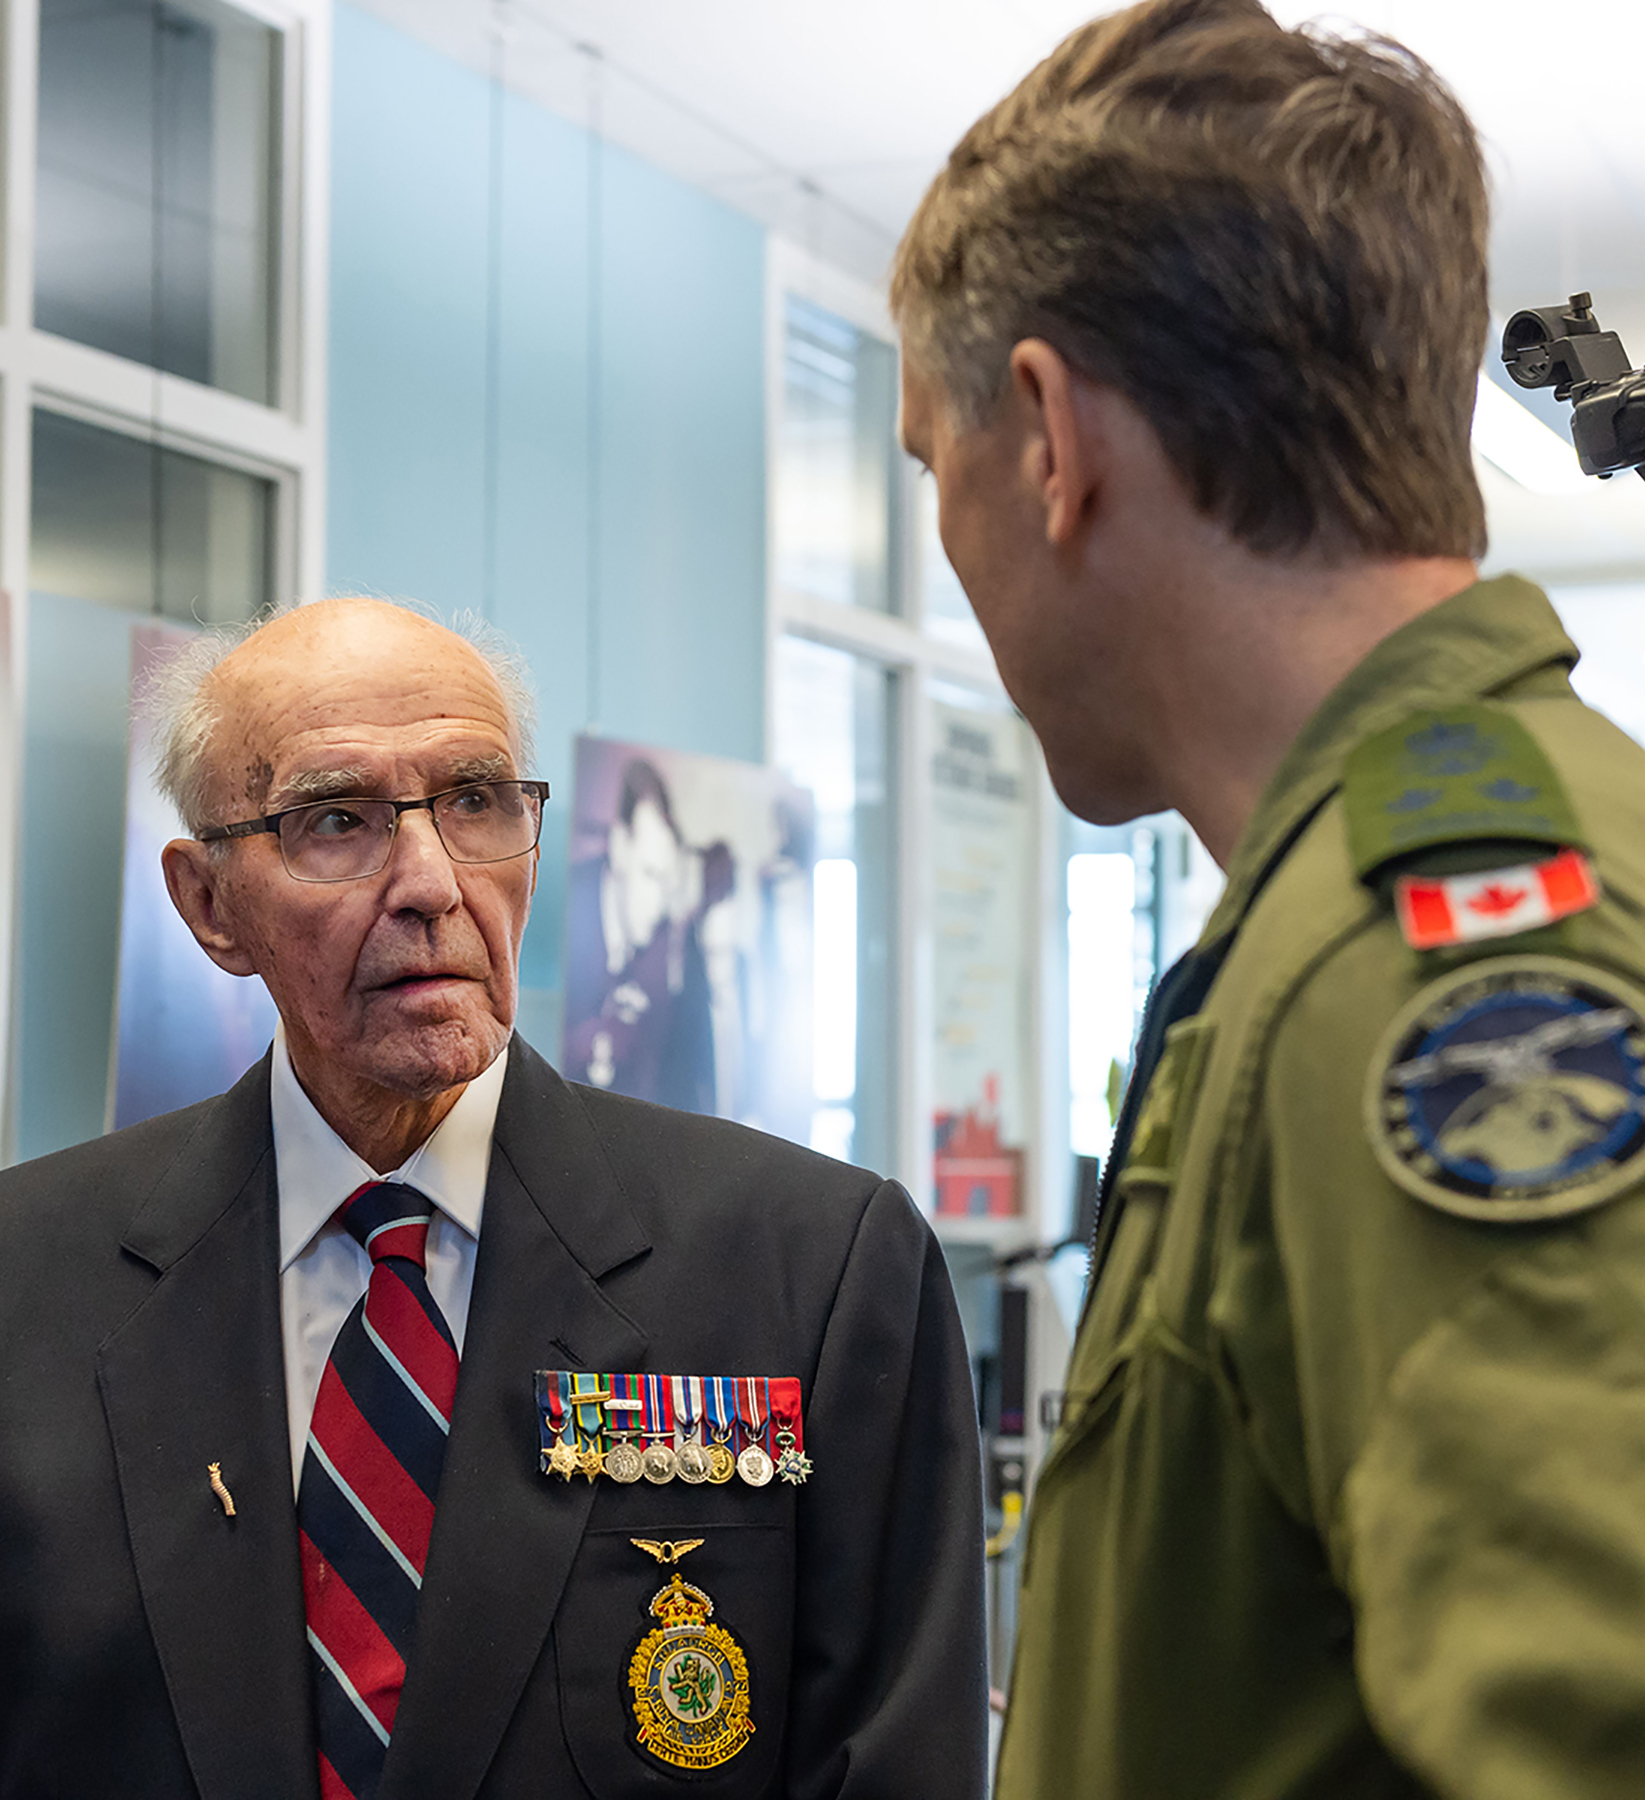 Flight Lieutenant (retired) Stuart Vallières talks about his Second World War service with Lieutenant-General Al Meinzinger, commander of the Royal Canadian Air Force, on May 15, 2019, at the National Air Force Museum of Canada in Trenton, Ontario. PHOTO: Corporal Ken Beliwicz, TN12-2019-001-002